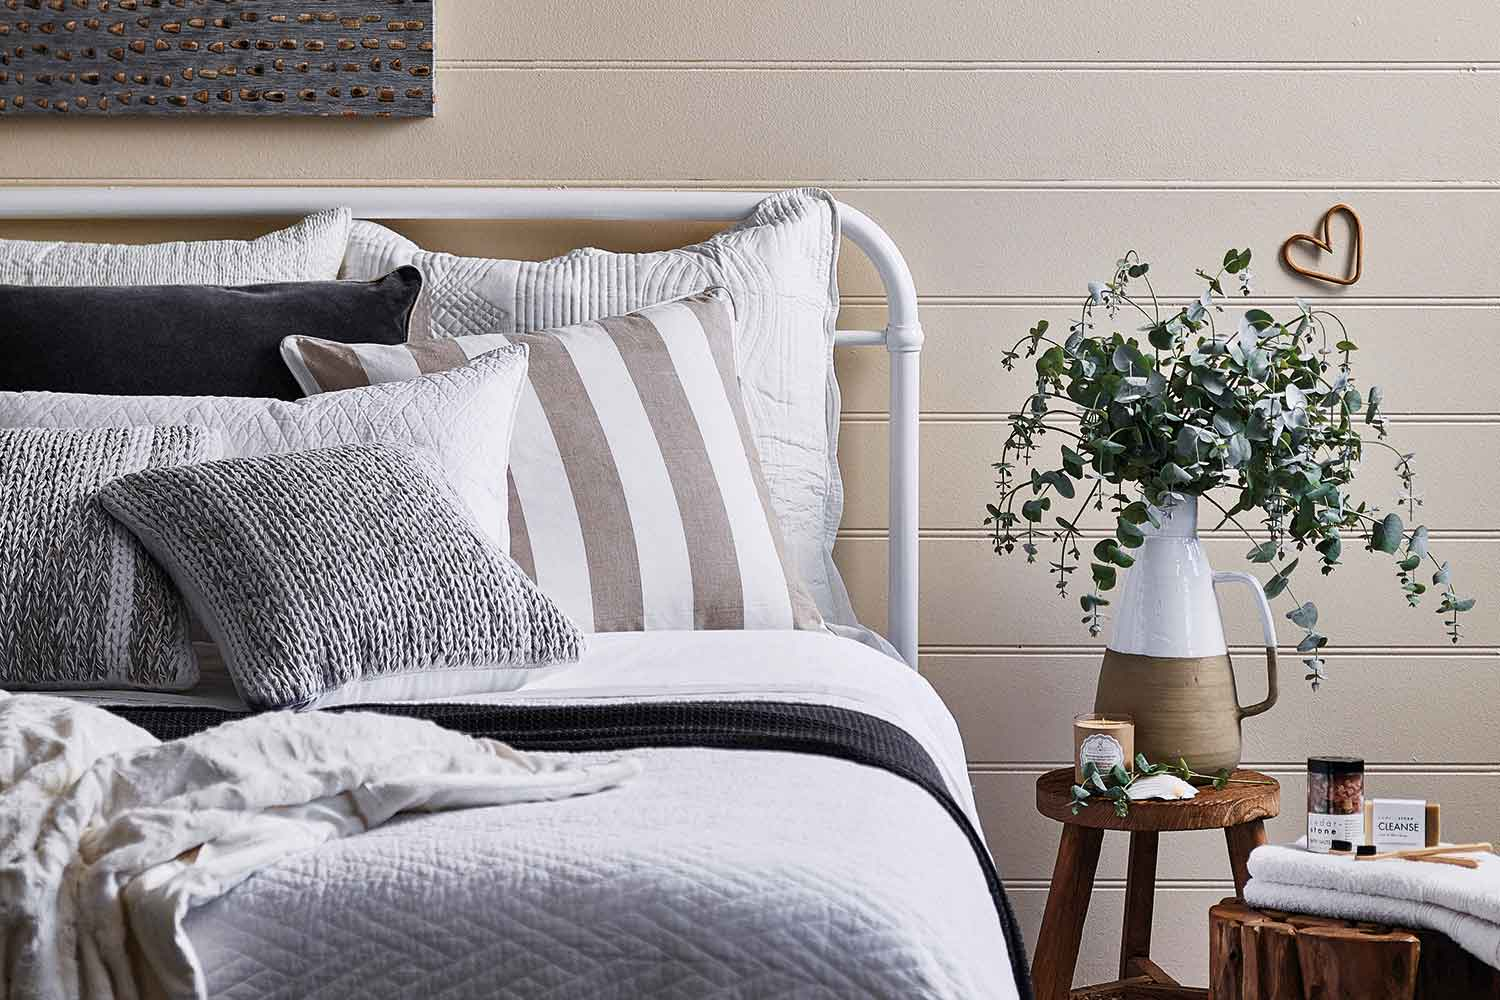 4 Affordable Ways To A Create And Decorate A Beautiful